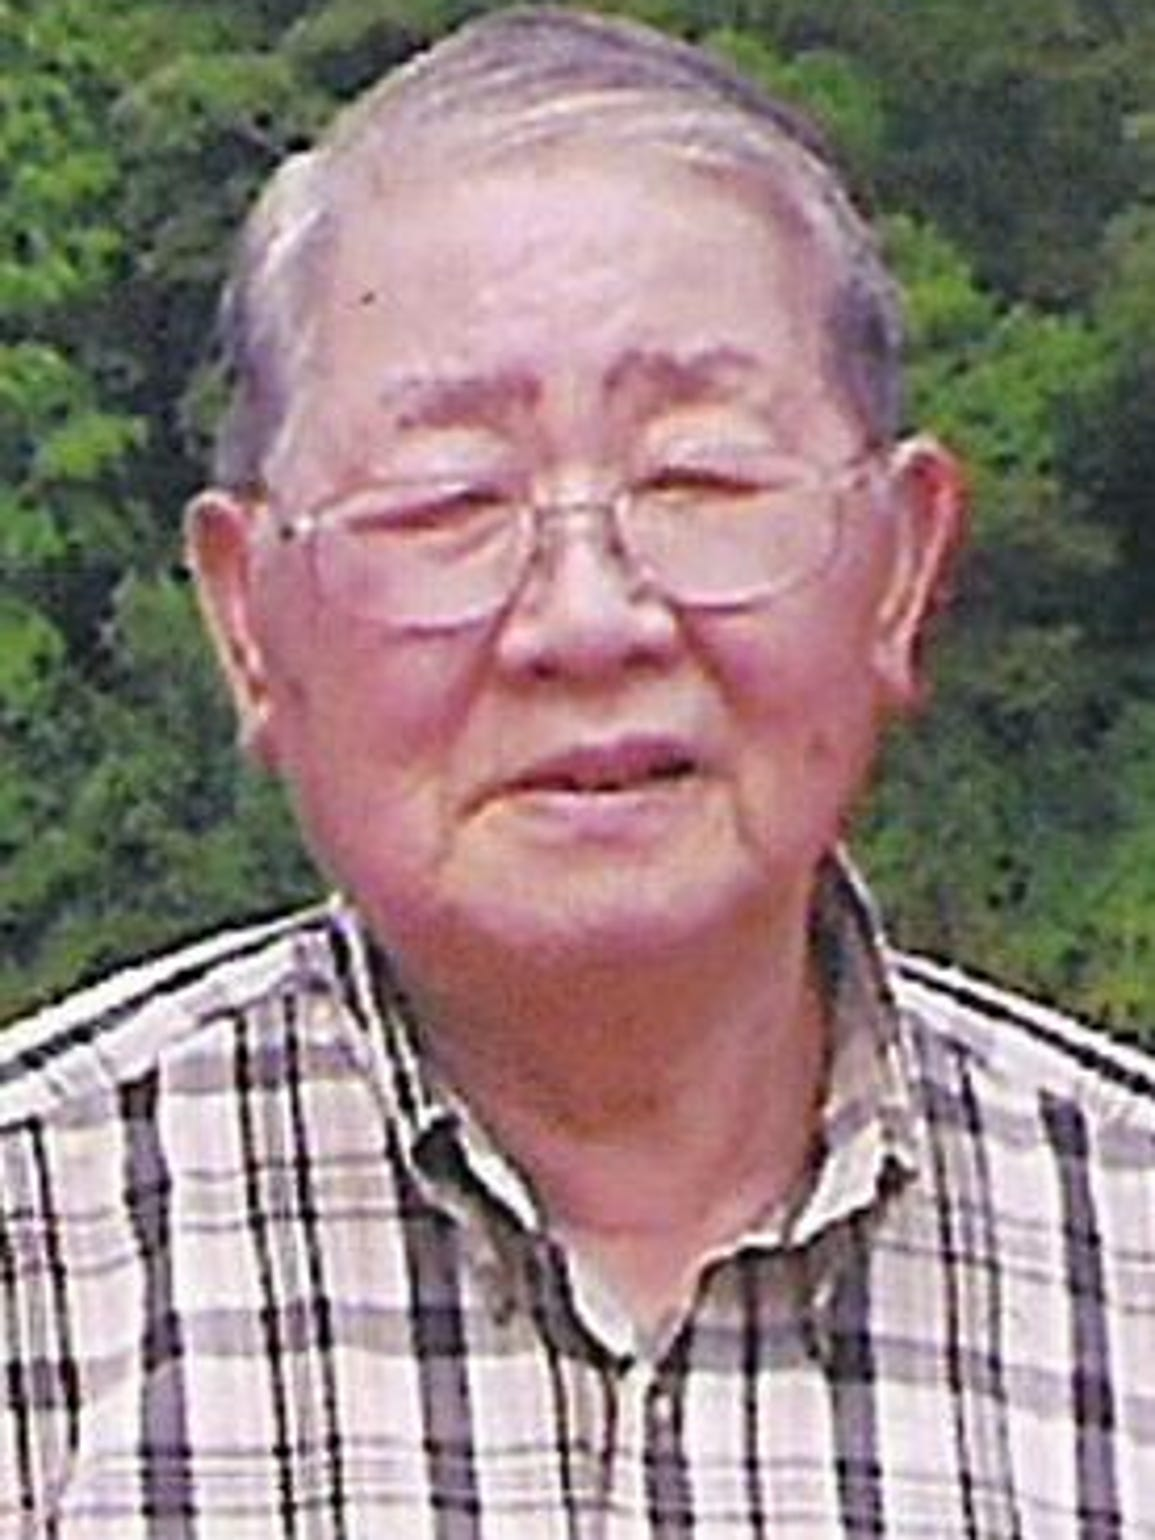 Gee Leong died in 2004.